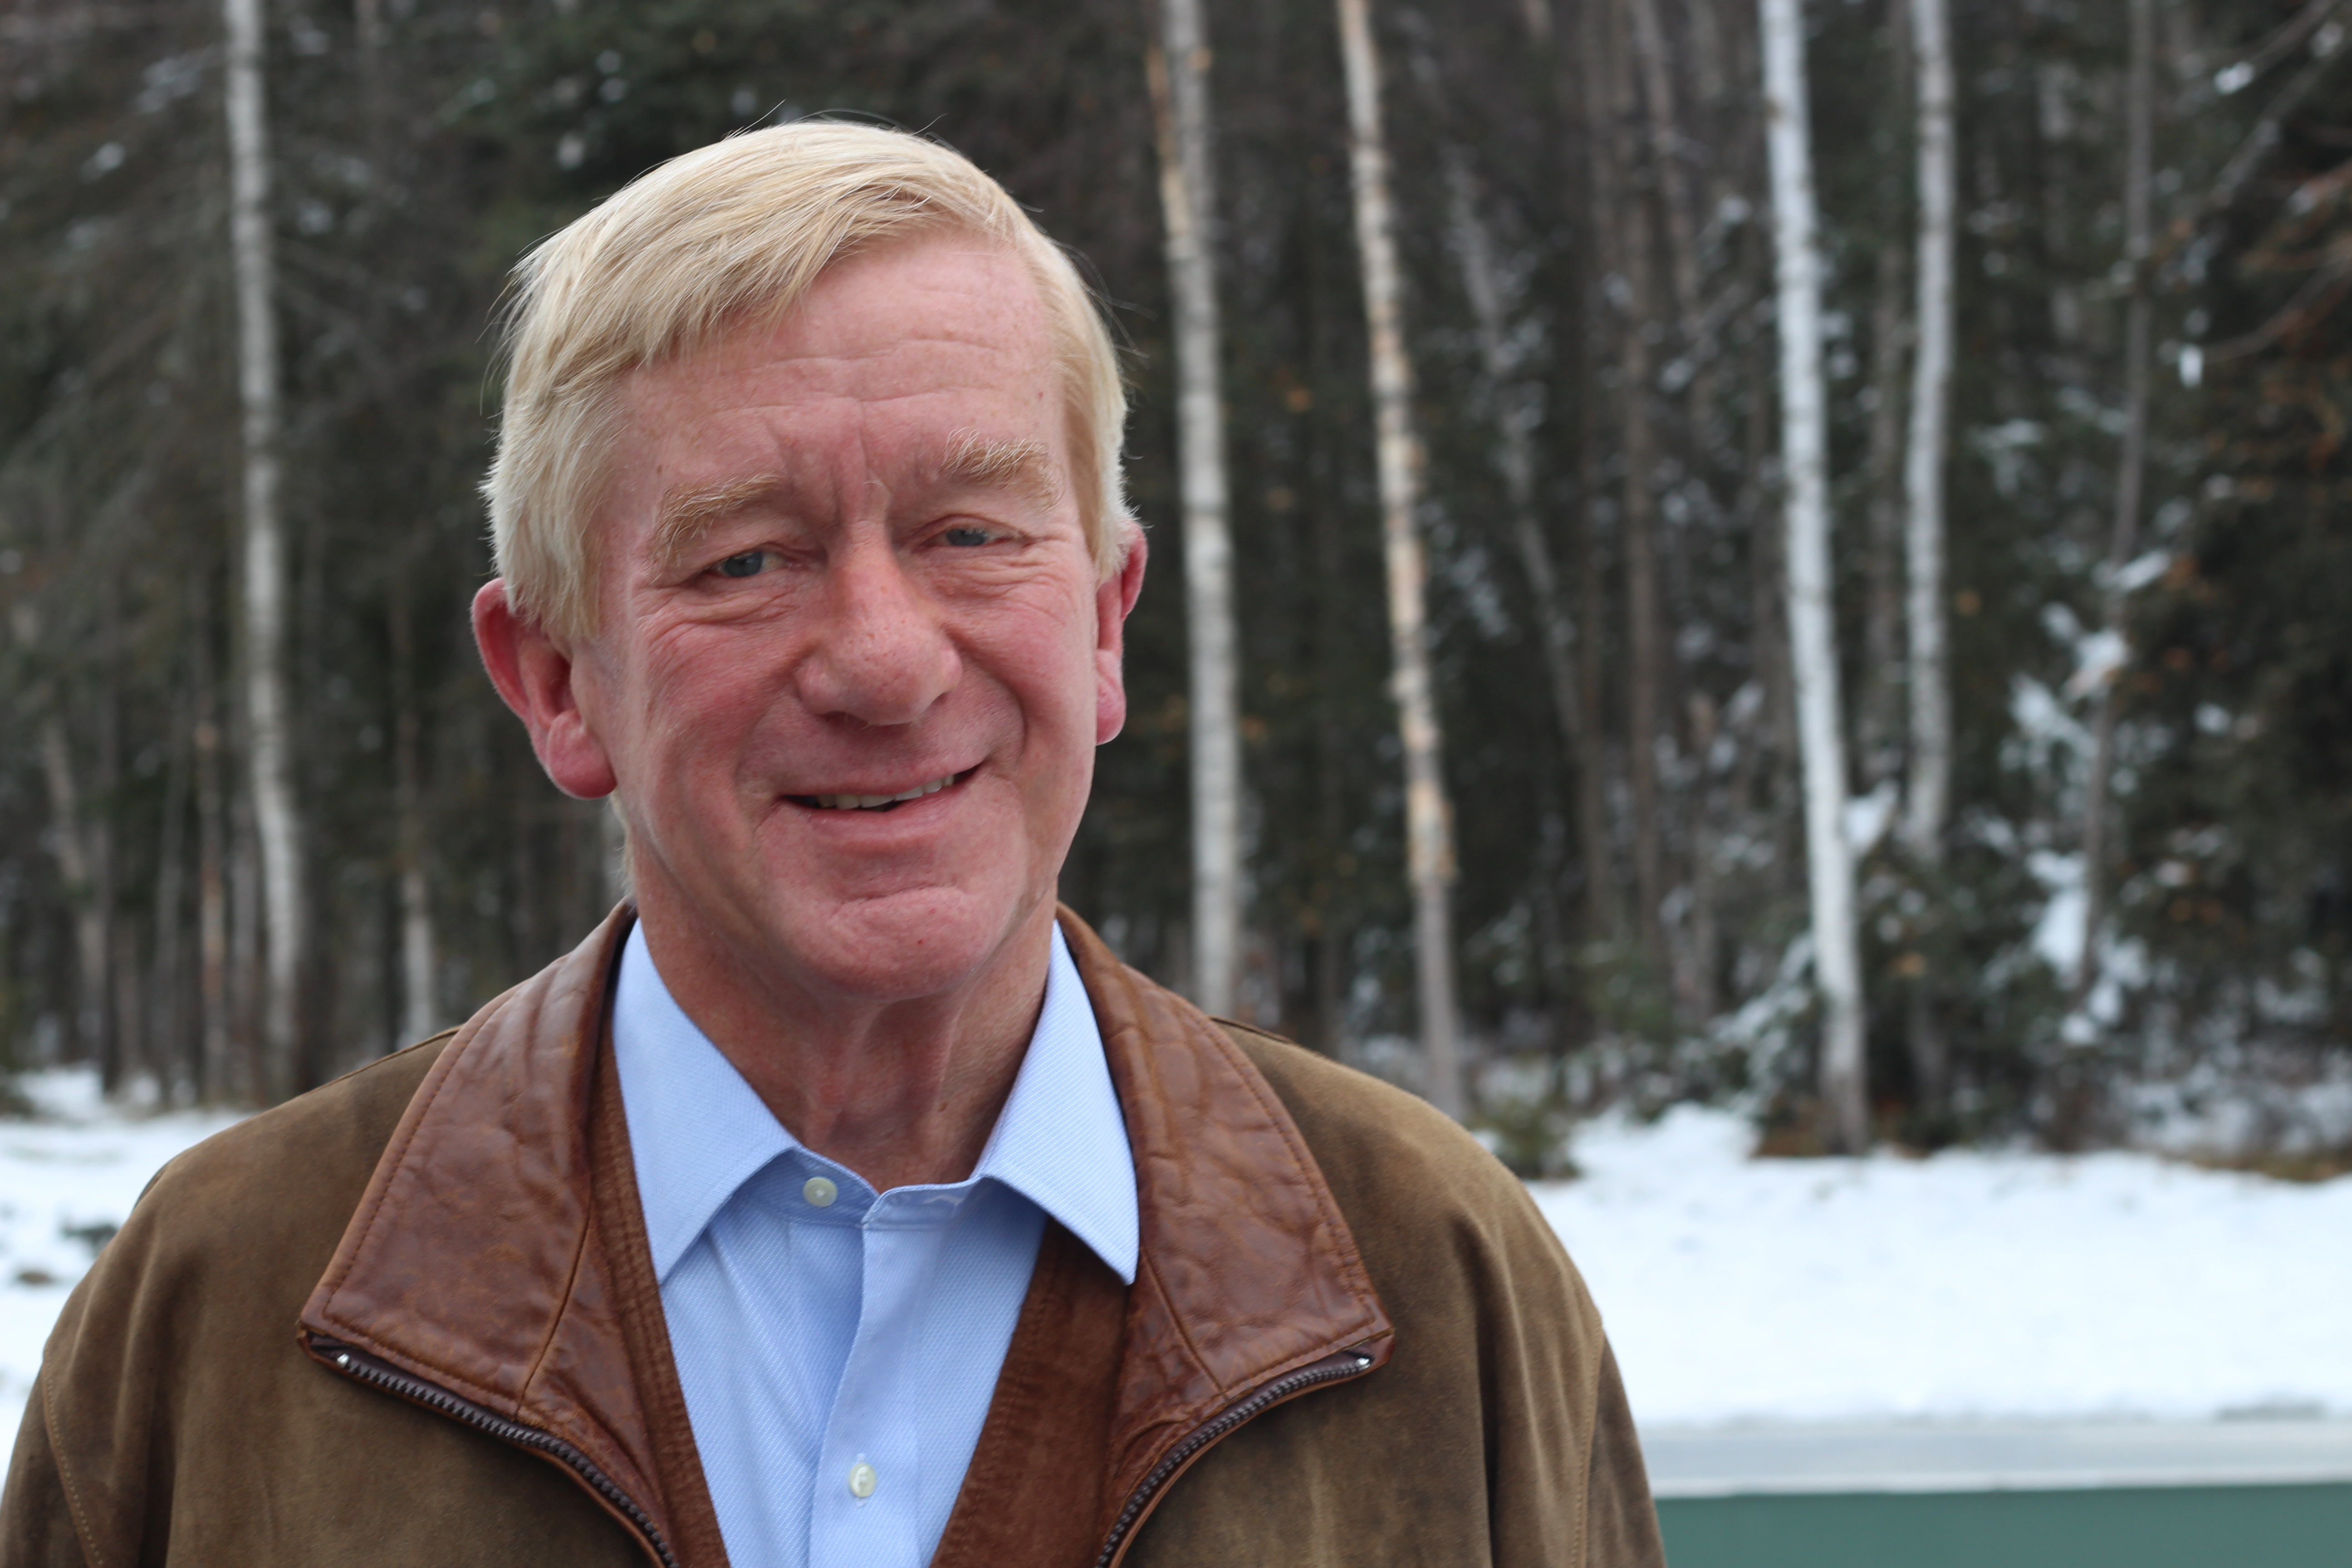 Bill Weld, former governor of Massachusetts, is the Libertarian Party's nominee for Vice President with running mate Gary Johnson. He stopped by Alaska Public Media to discuss his platform. (Photo by Wesley Early, Alaska Public Media -Anchorage)